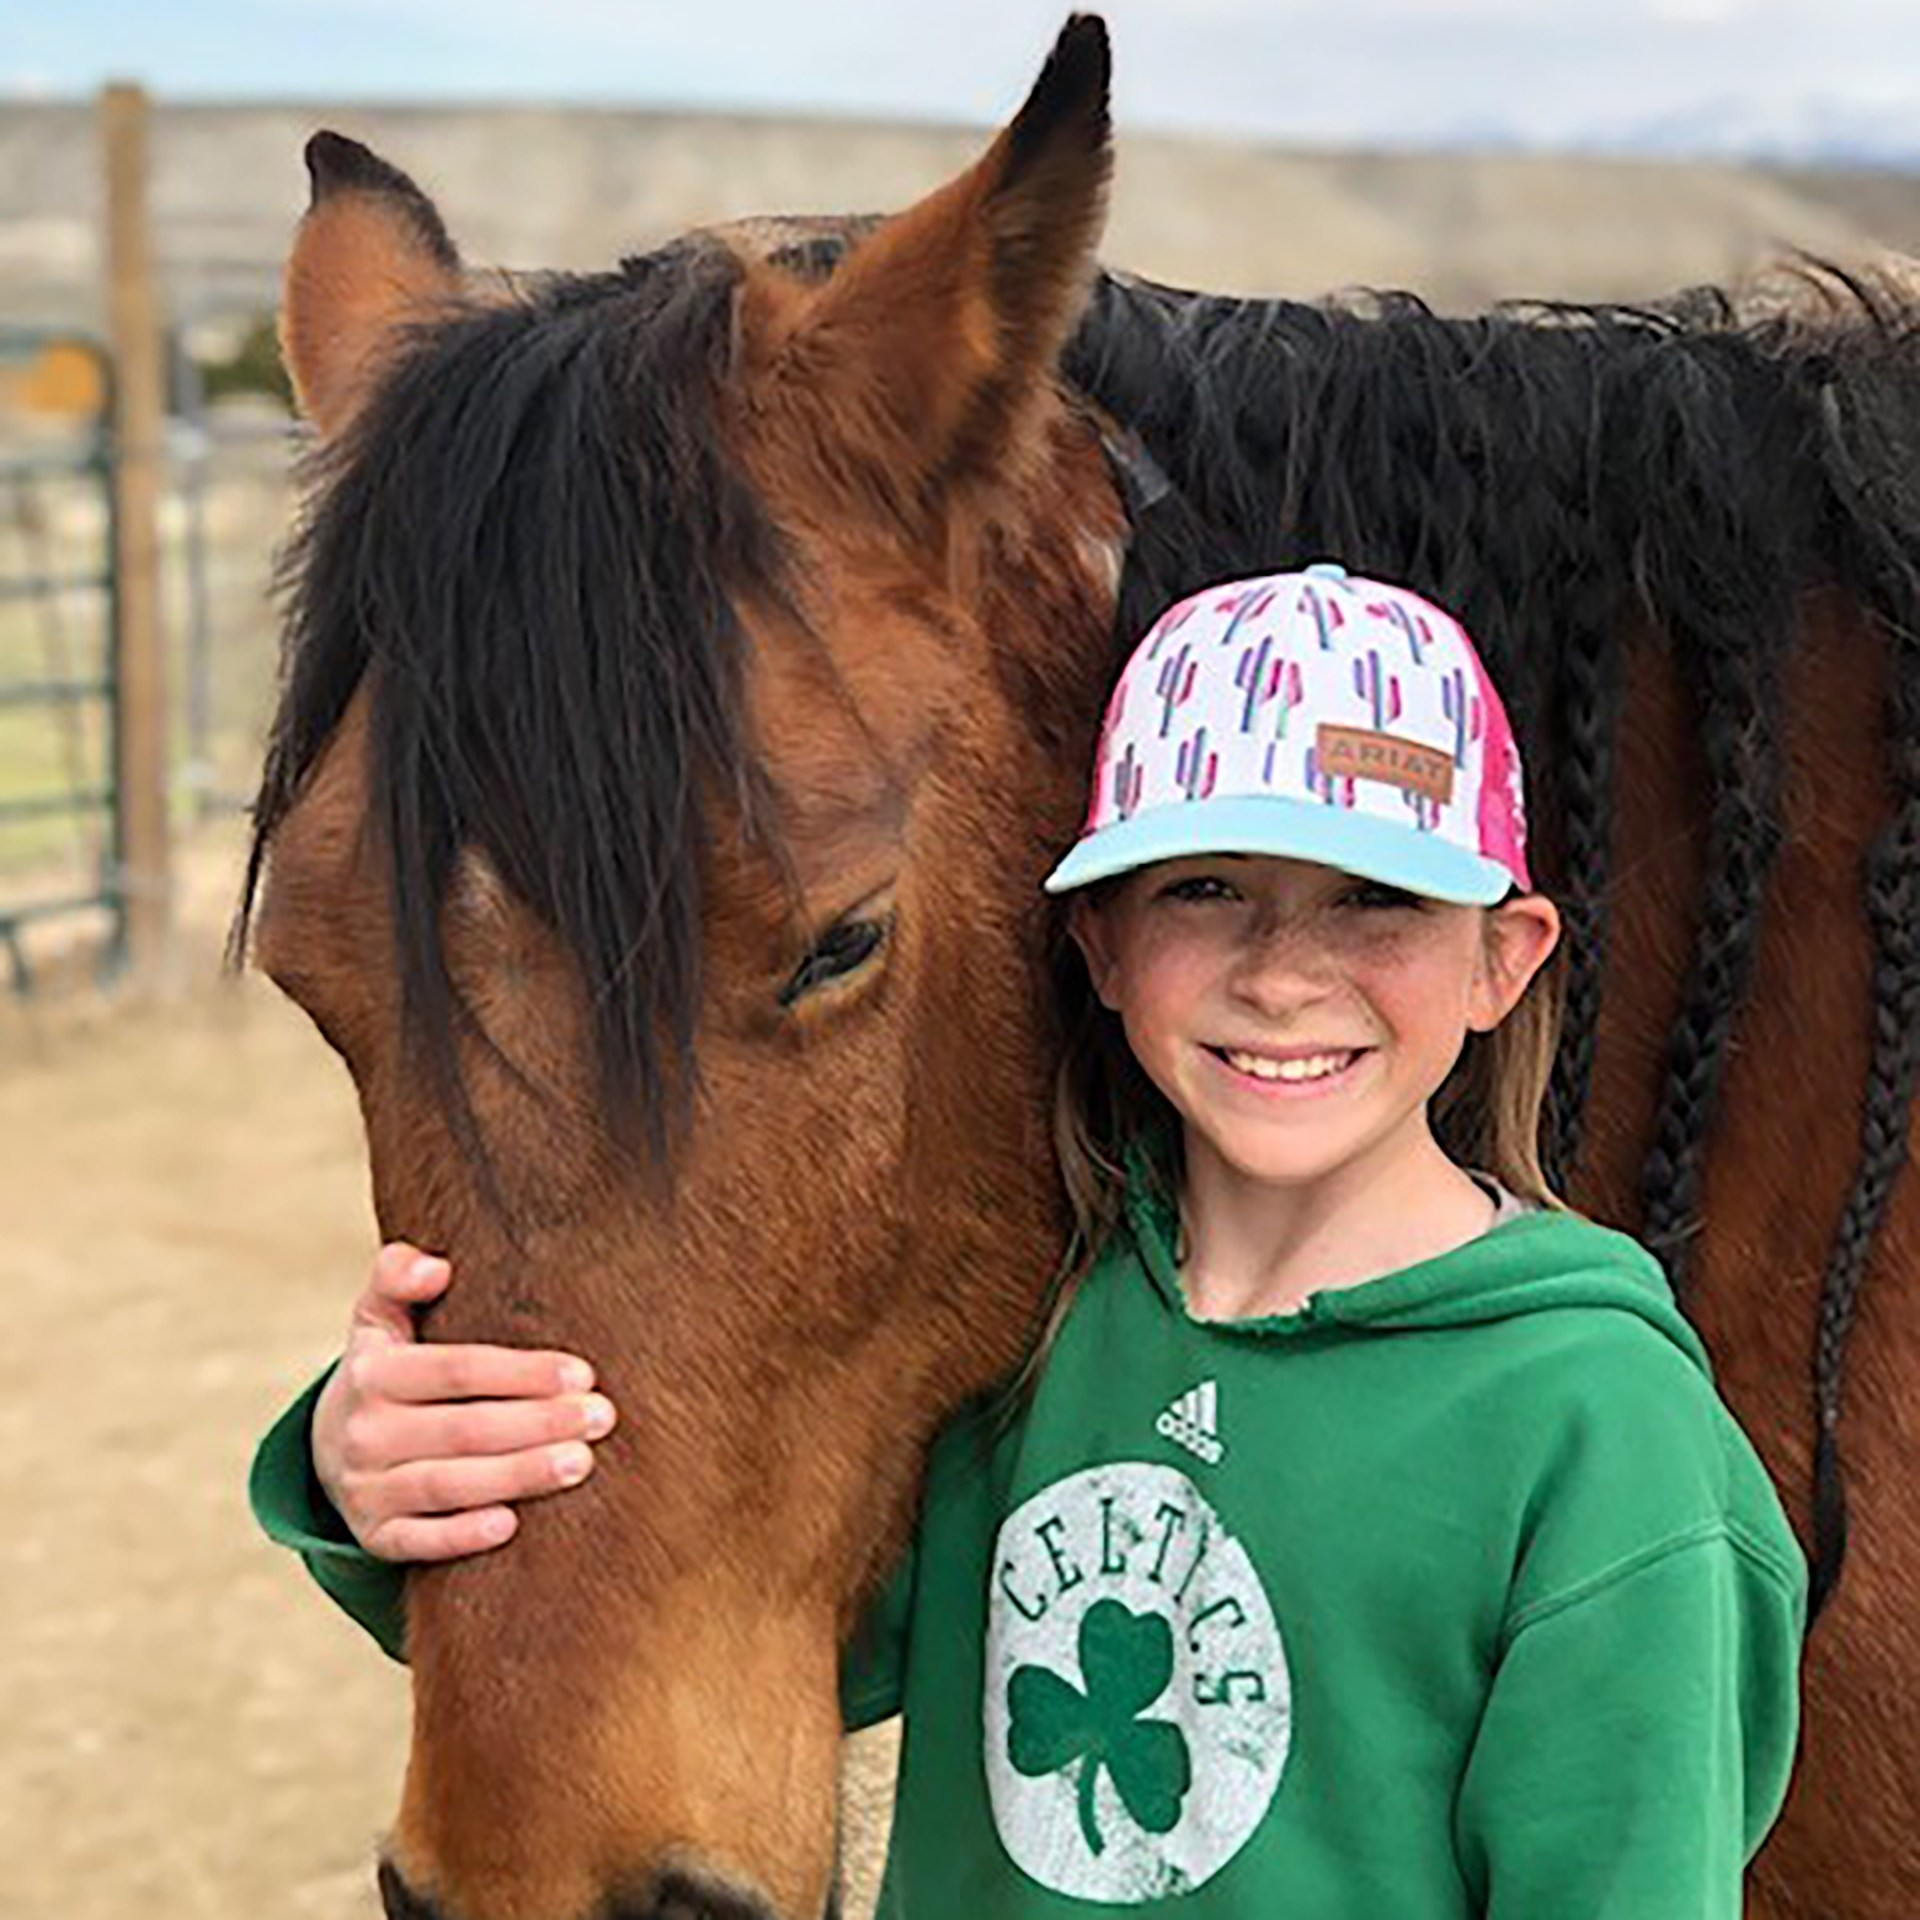 4-H student with horse